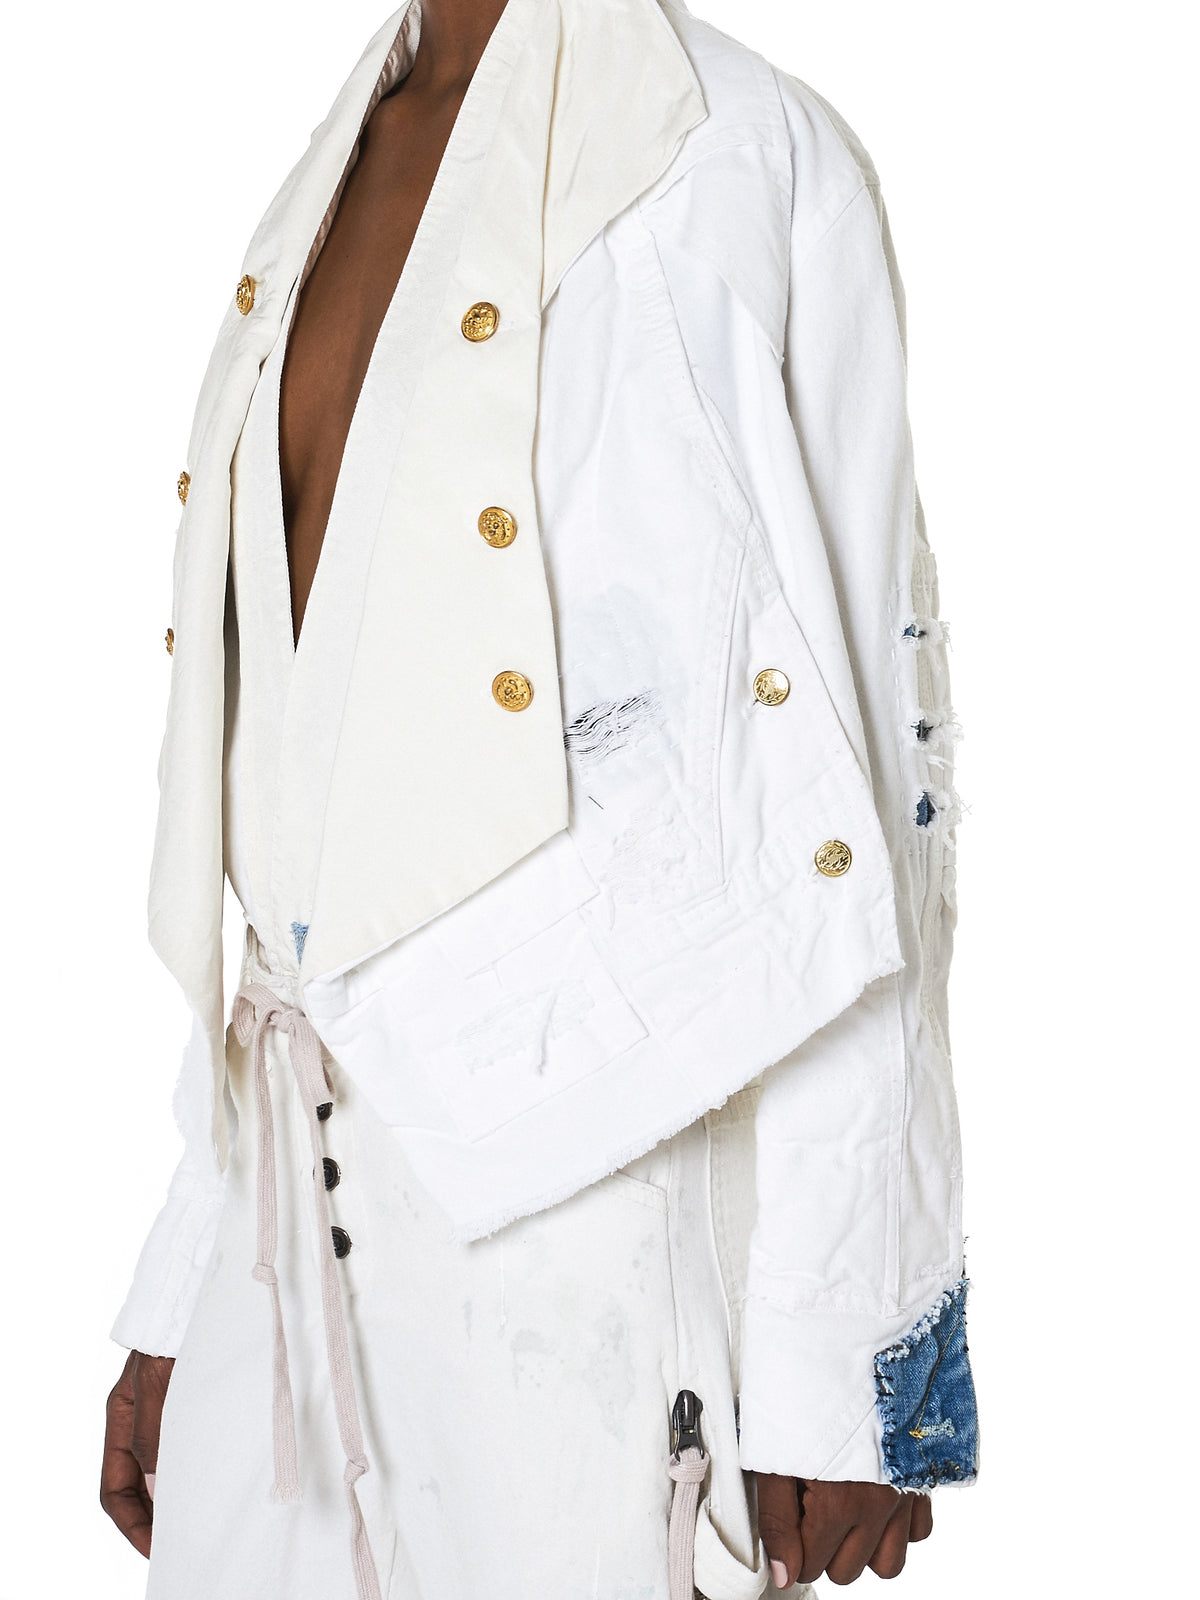 Greg Lauren Cropped Jacket - Hlorenzo Detail 2